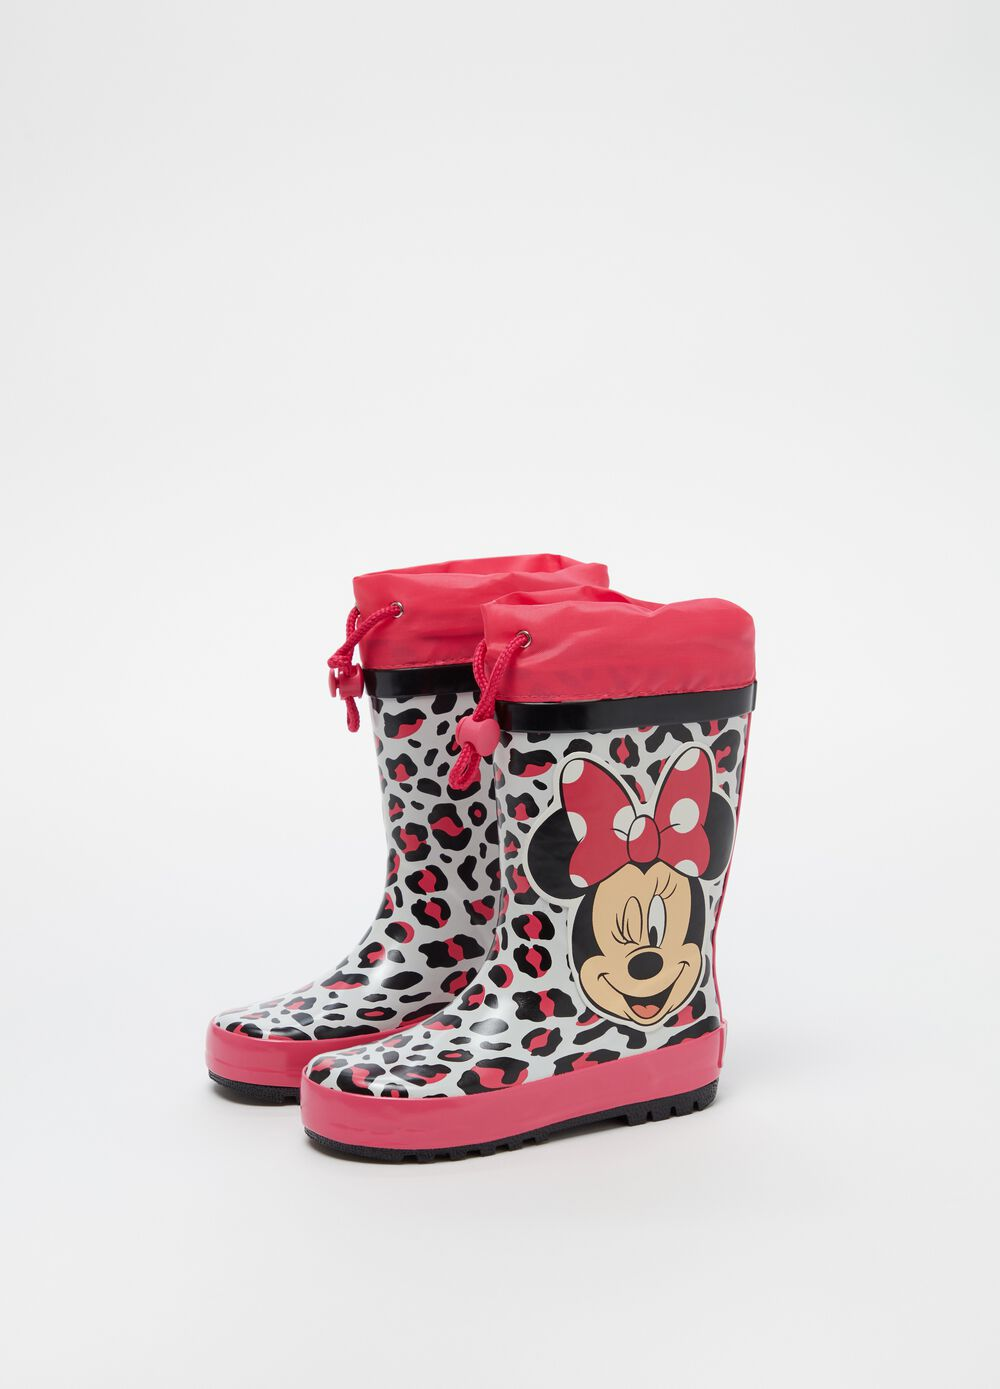 Rain boots with Disney Minnie Mouse print